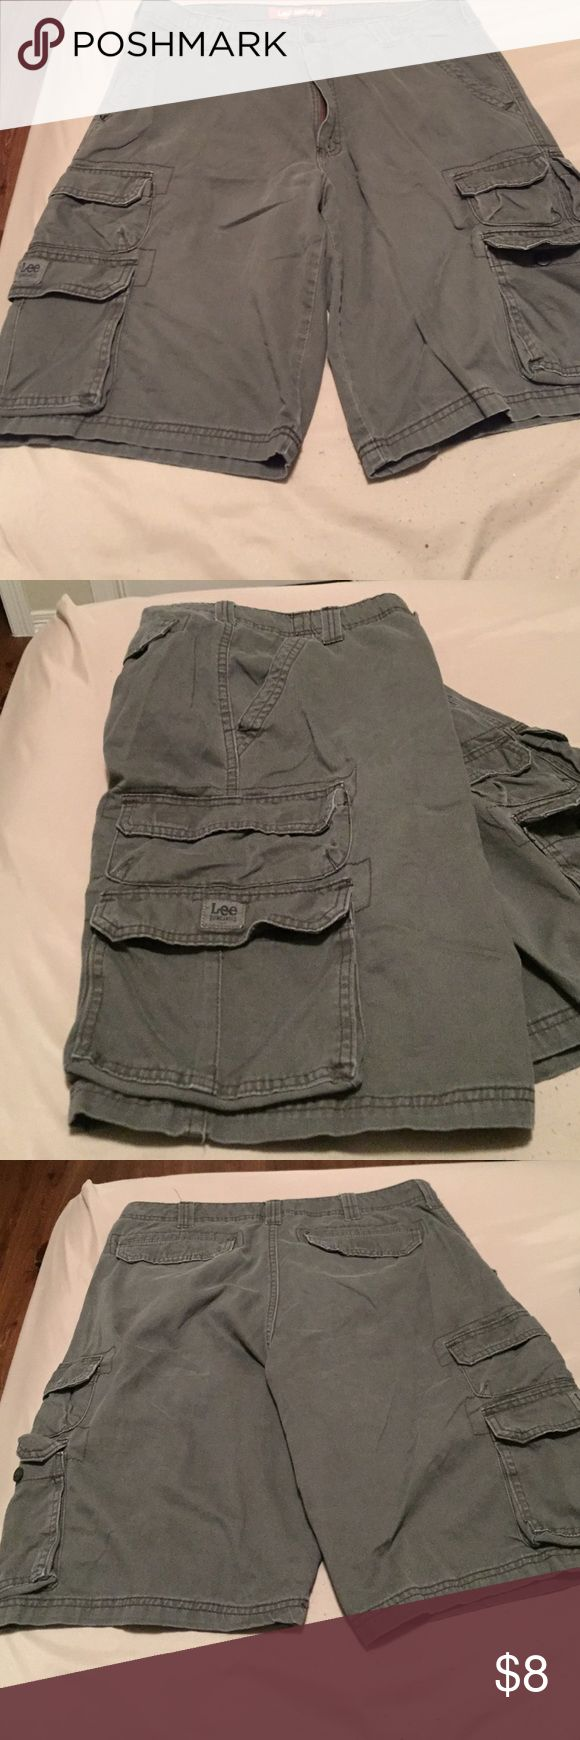 Men's Lee cargo shorts These shorts are a bluish gray color. In very good condition lee dungarees  Shorts Cargo